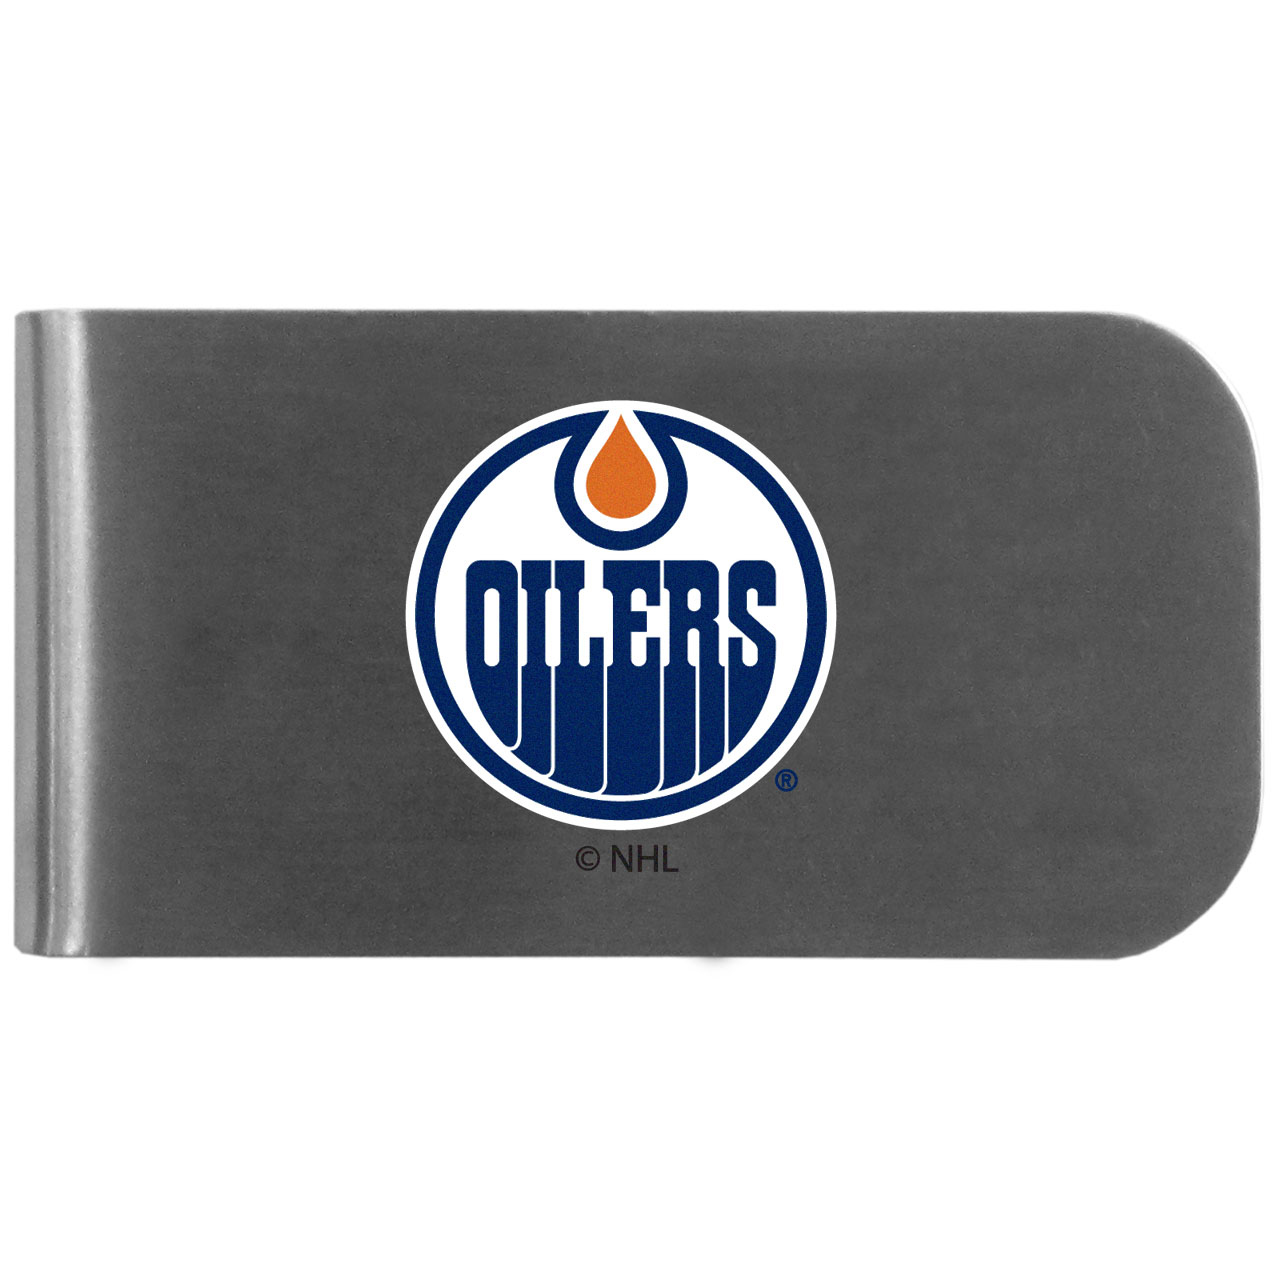 Edmonton Oilers Logo Bottle Opener Money Clip - This unique money clip features a classic, brushed-metal finish with a handy bottle opener feature on the back. The clip has the Edmonton Oilers logo expertly printed on the front of the clip.